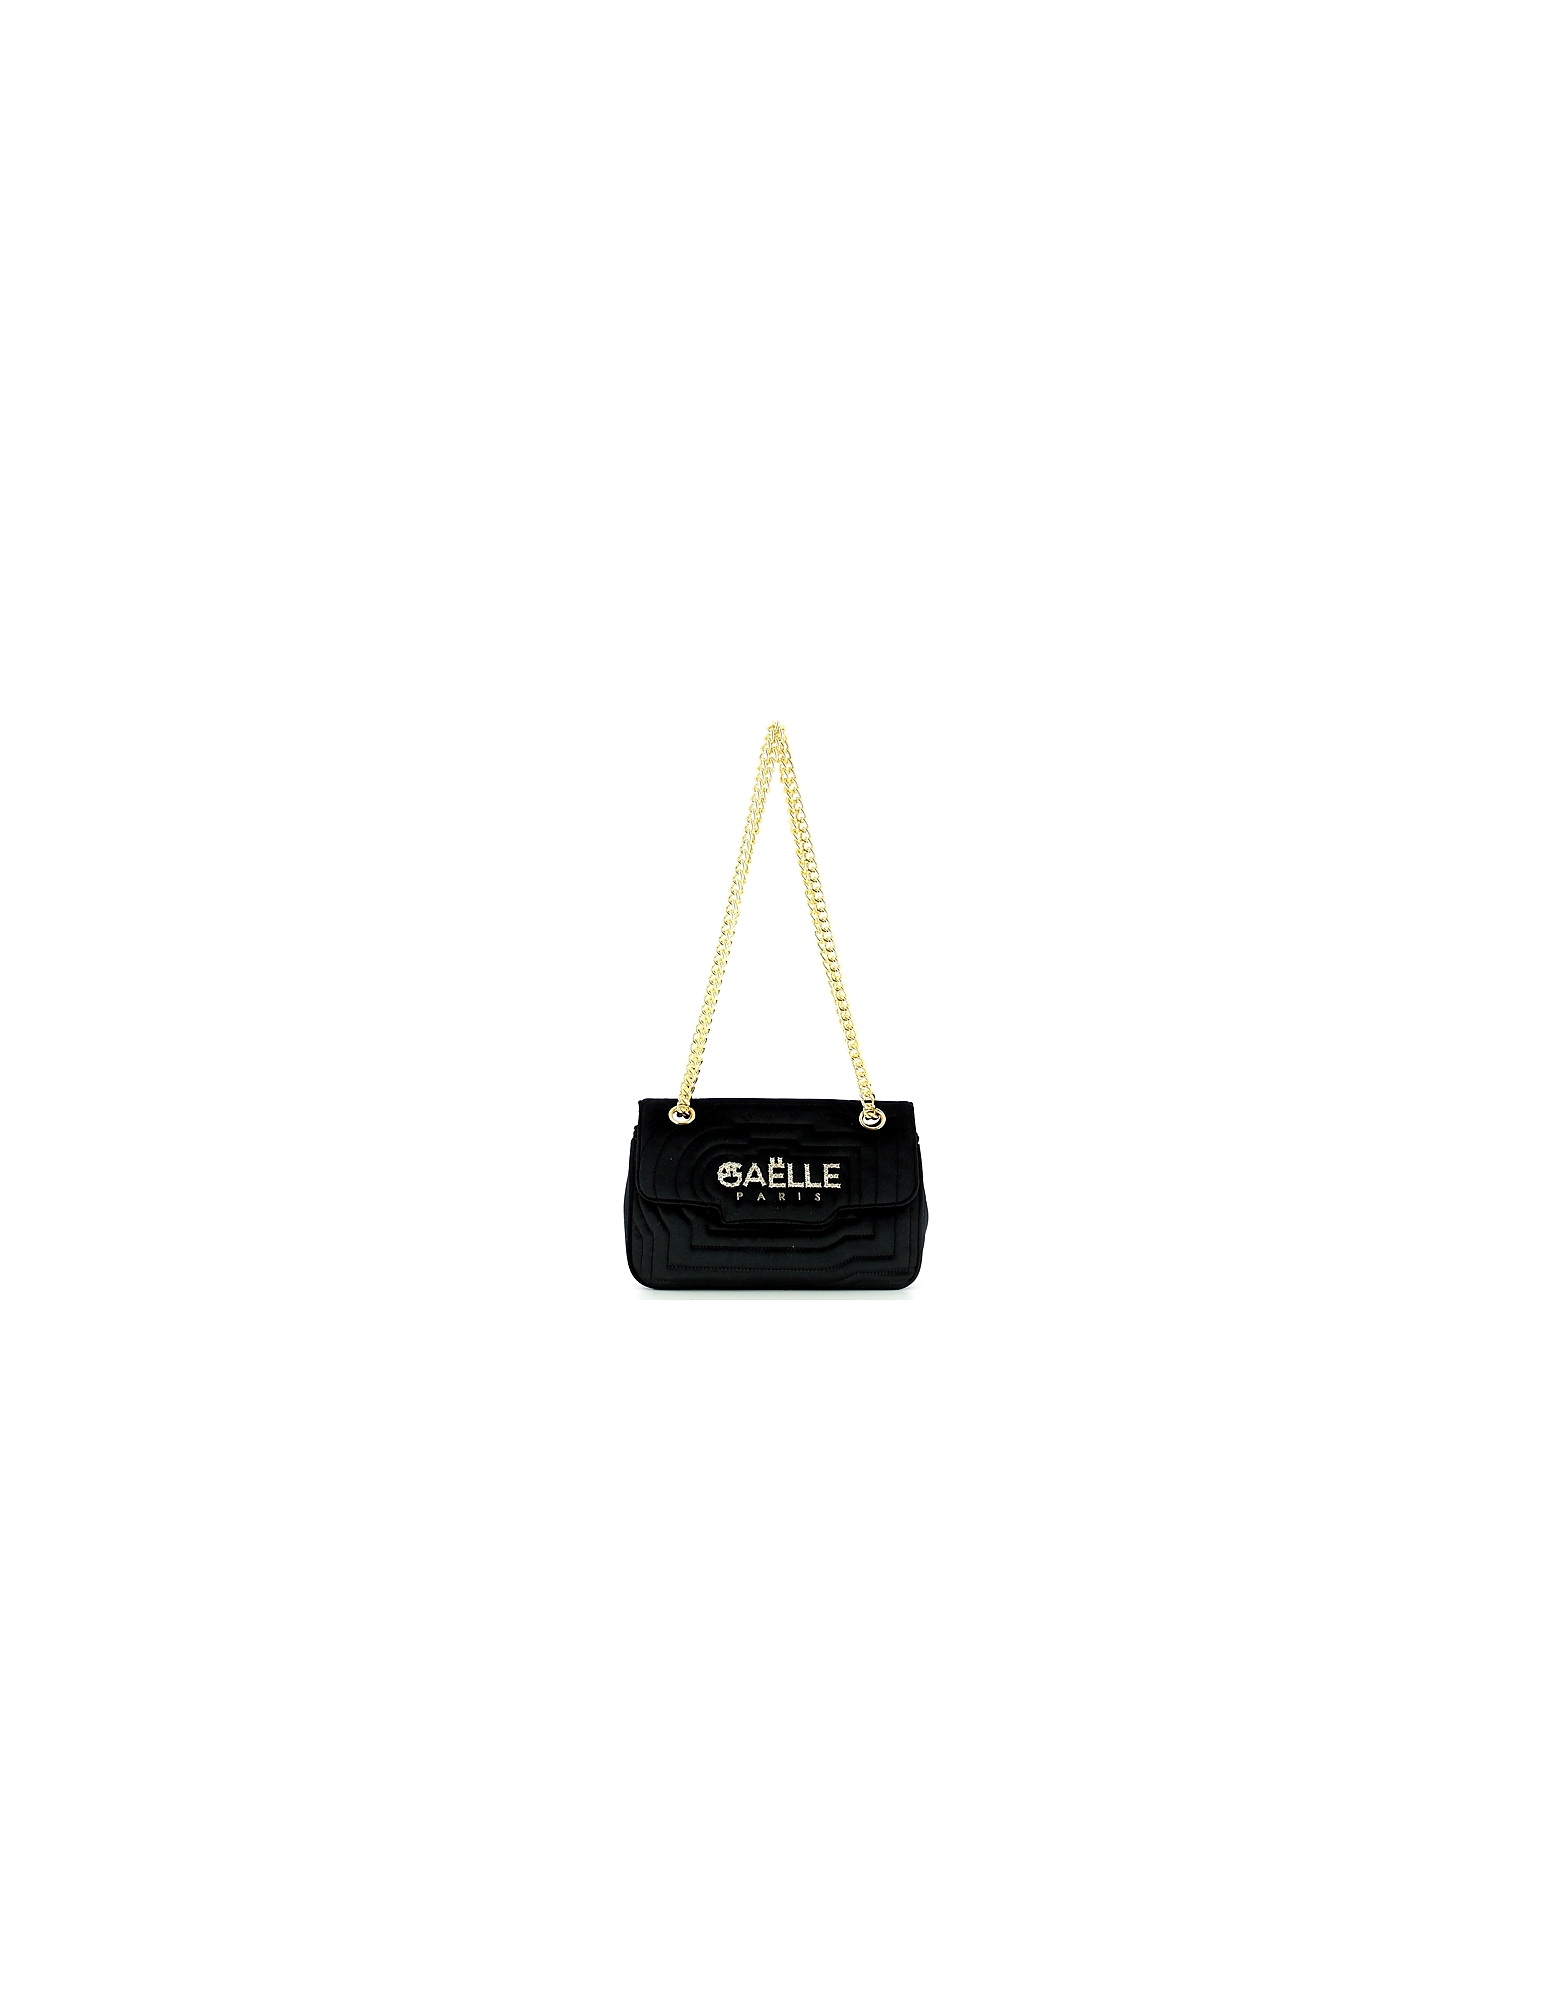 GAELLE PARIS Designer Handbags, Women's Black Bag